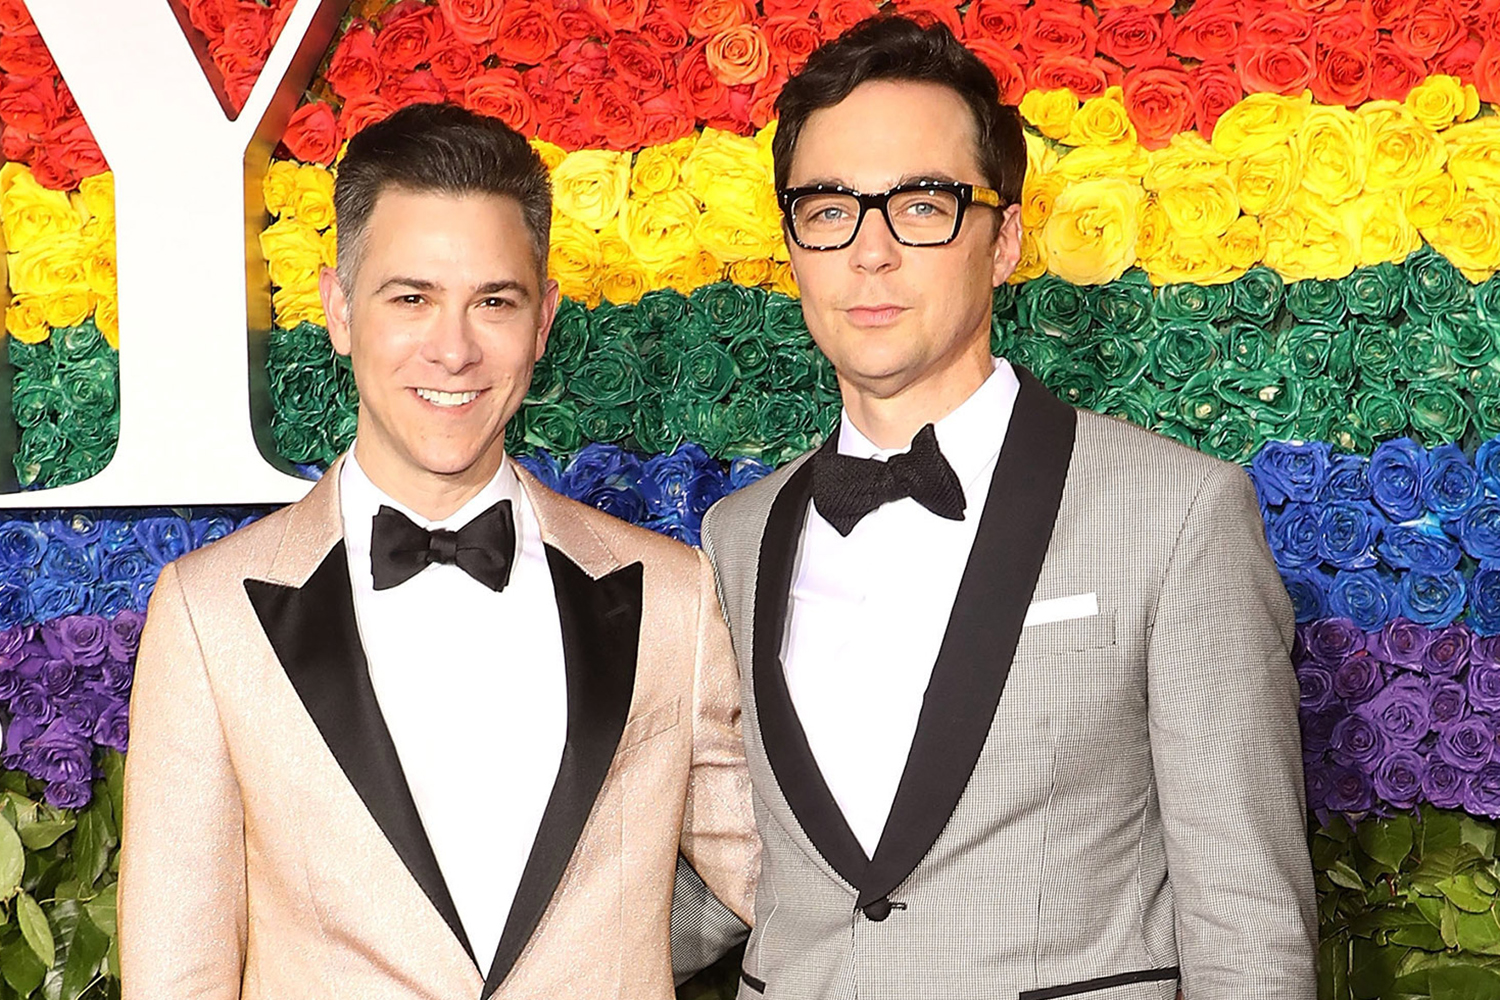 """TheBig Bang Theory star and his husband contracted COVID-19 in March, Parsons revealed on the Sept. 28 episode of The Tonight Show Starring Jimmy Fallon.                             ″Todd and I both had it early on. It was, like, middle of March,″ Parsons recalled, going on to describe their symptoms″We didn't know what it was. We thought we had colds. And then it seemed less likely, and then finally welost our sense of smell and taste.″                             ″It defied the descriptions for me. I didn't realize how completely taste and smell could be gone,″ he continued. ″And when you're in quarantine and there's really nothing to do but eat, oh my God, that was brutal."""""""